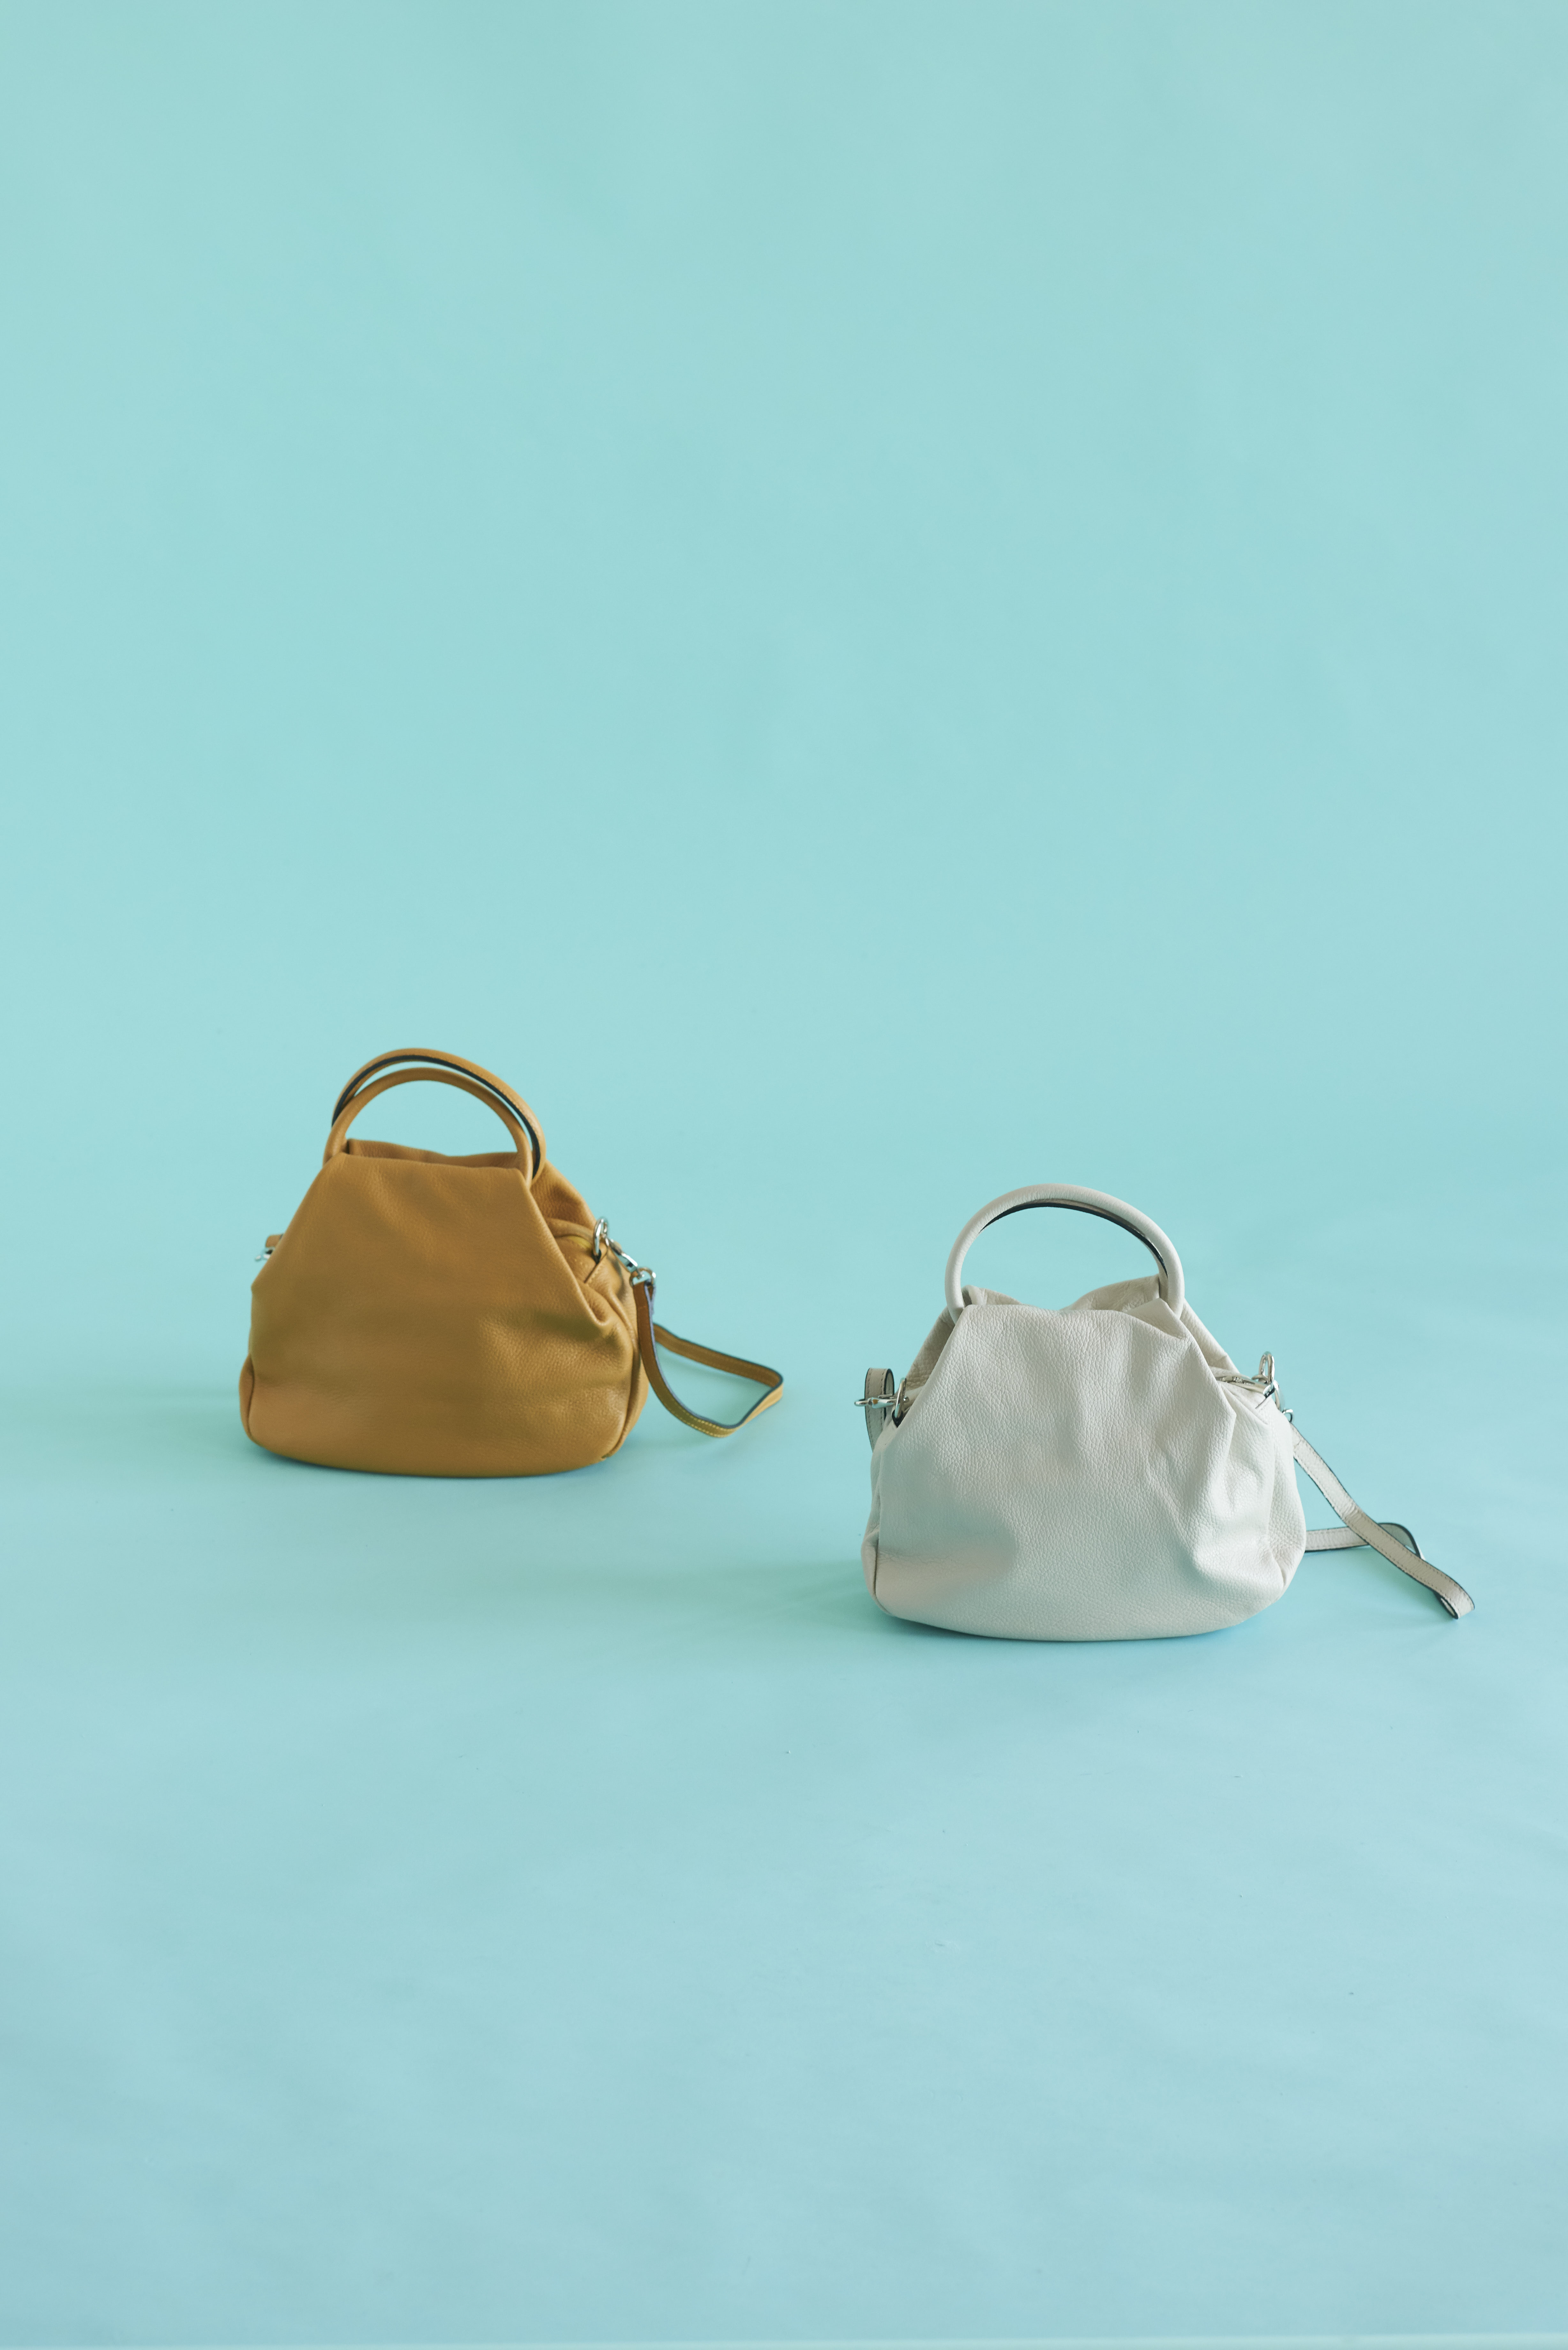 AULENTTI leather tote bag